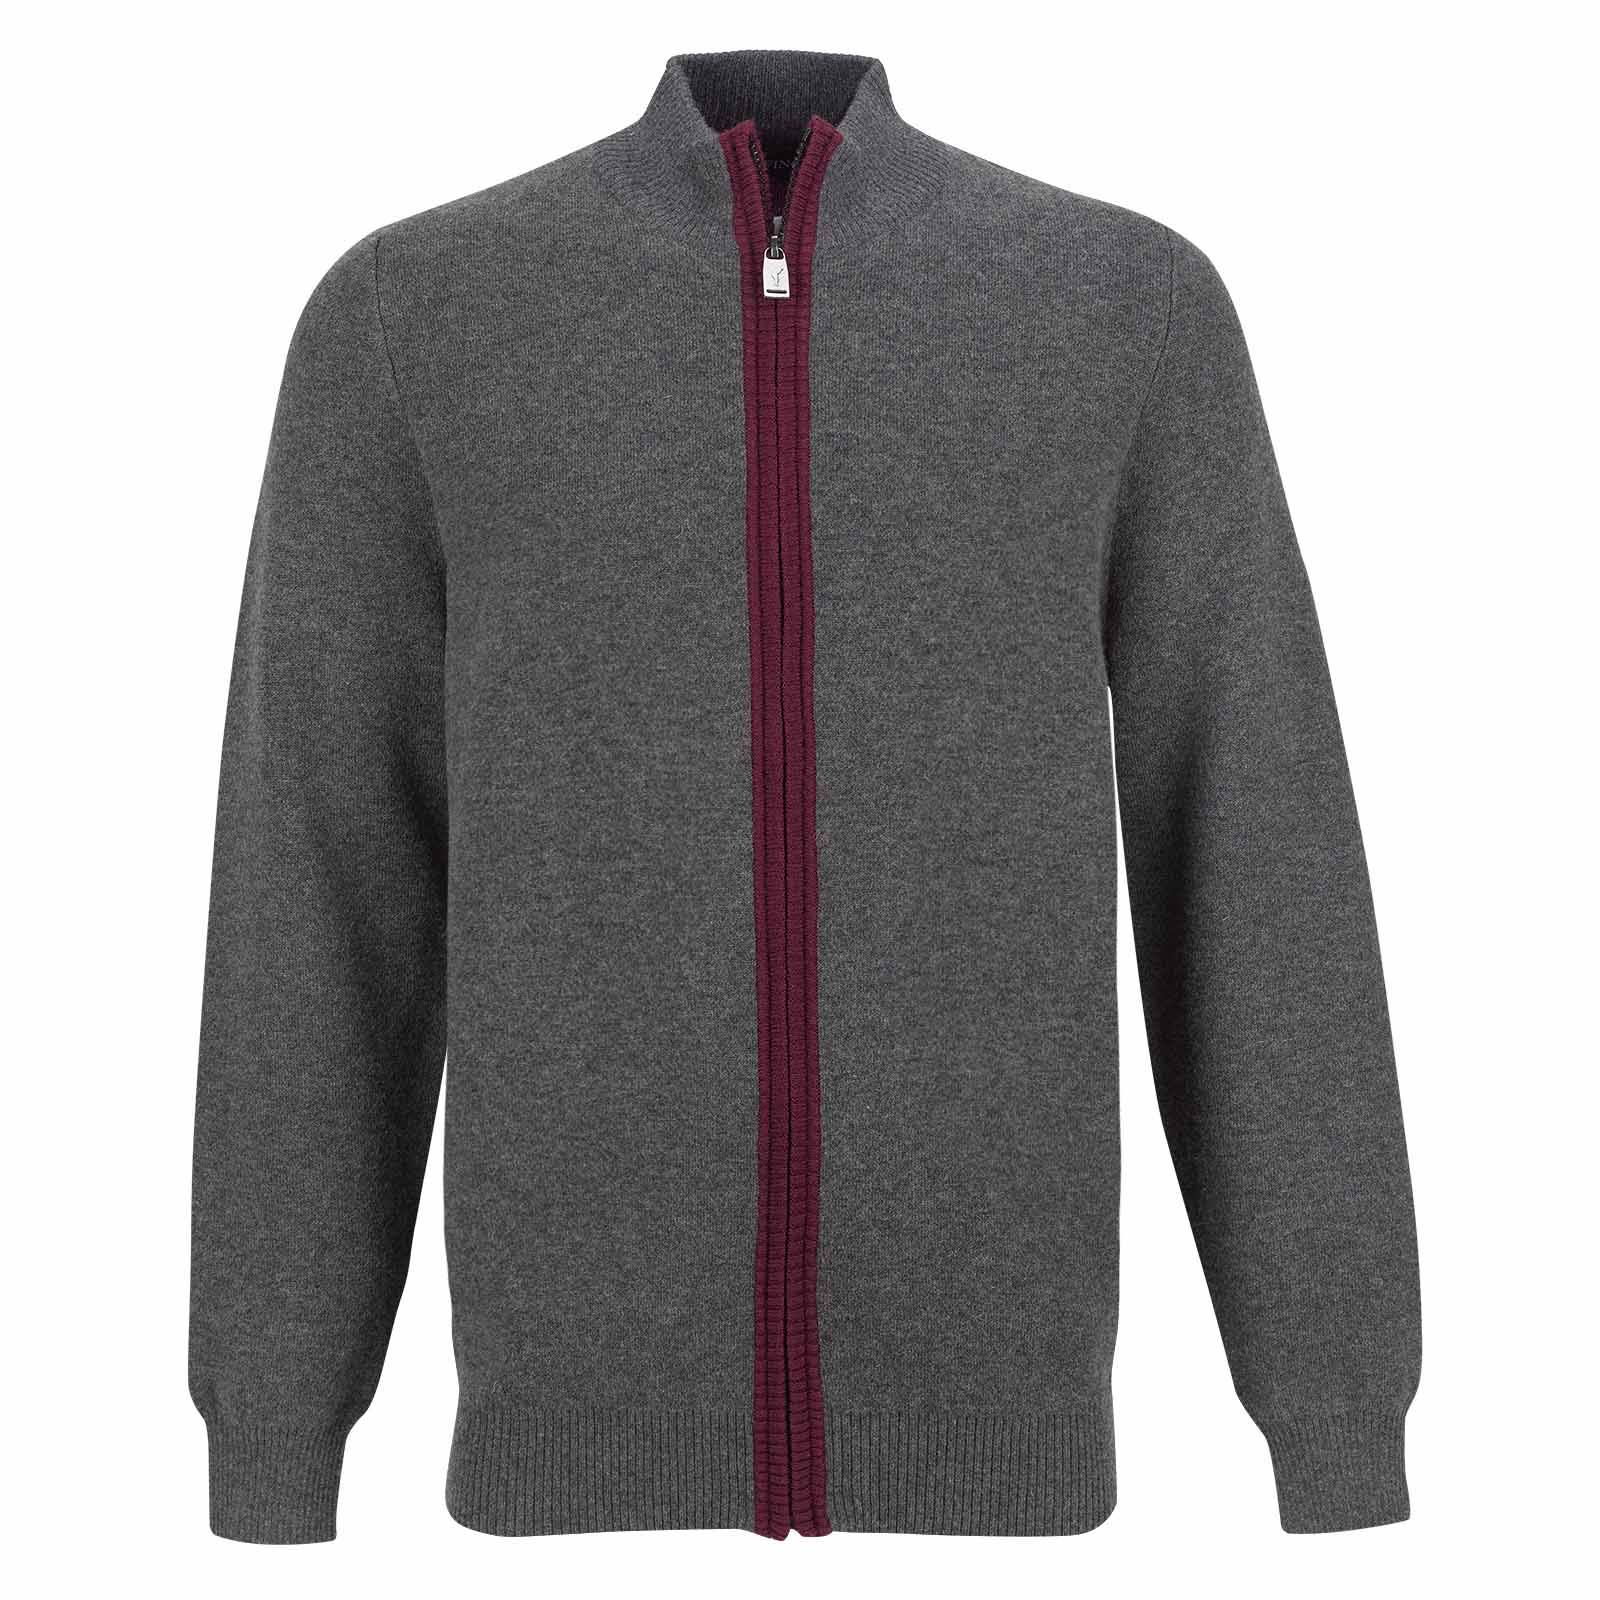 Men's golf cardigan with Merino cotton yarn